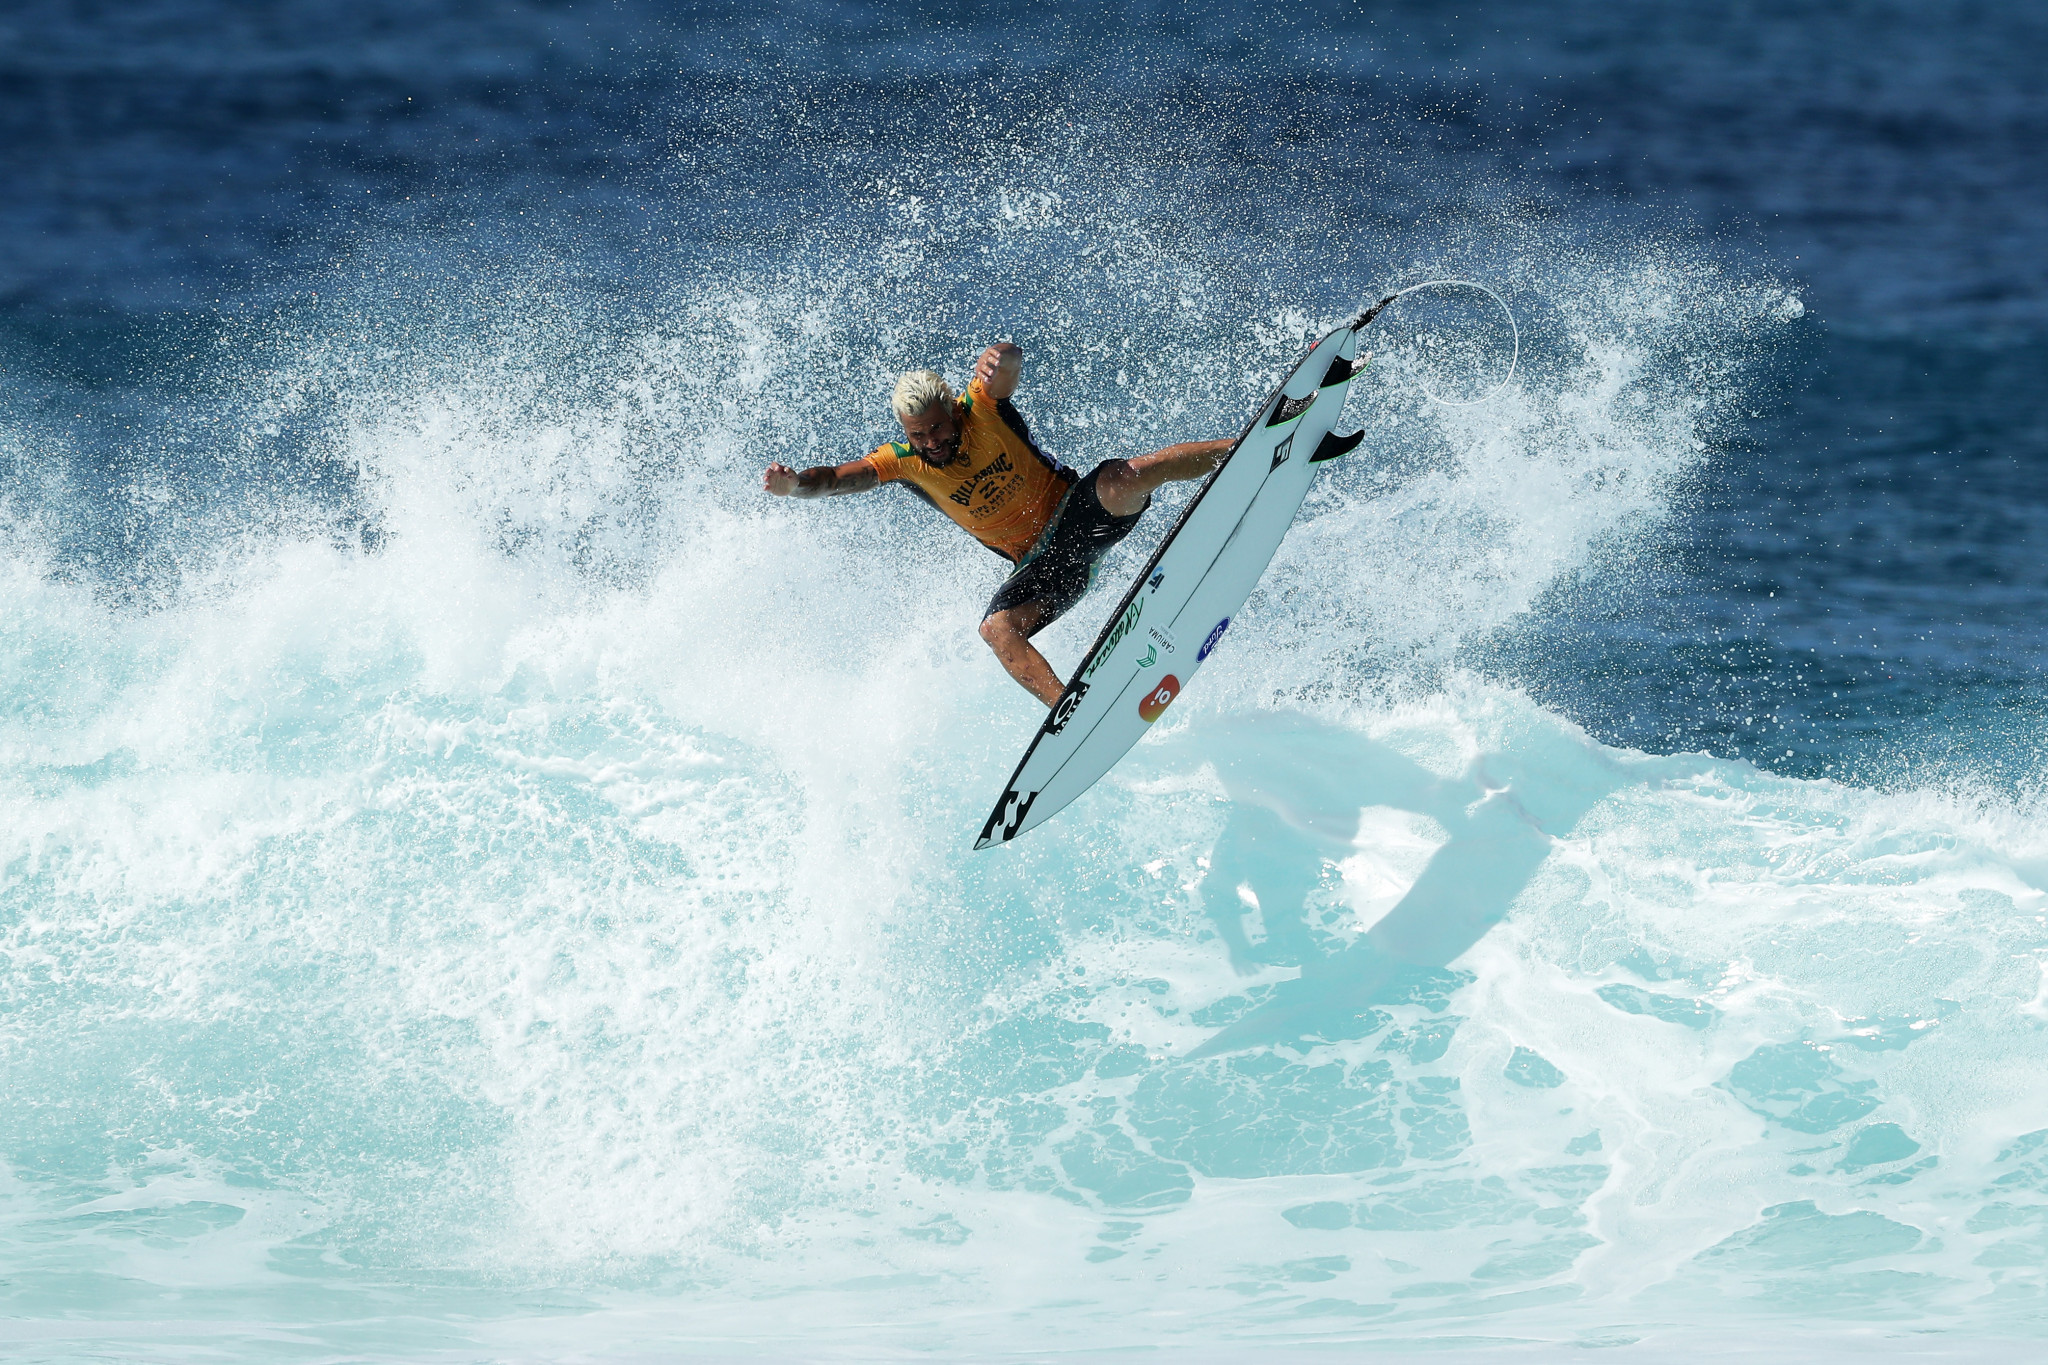 Newcastle poised to launch World Surf League's four-leg Australian swing